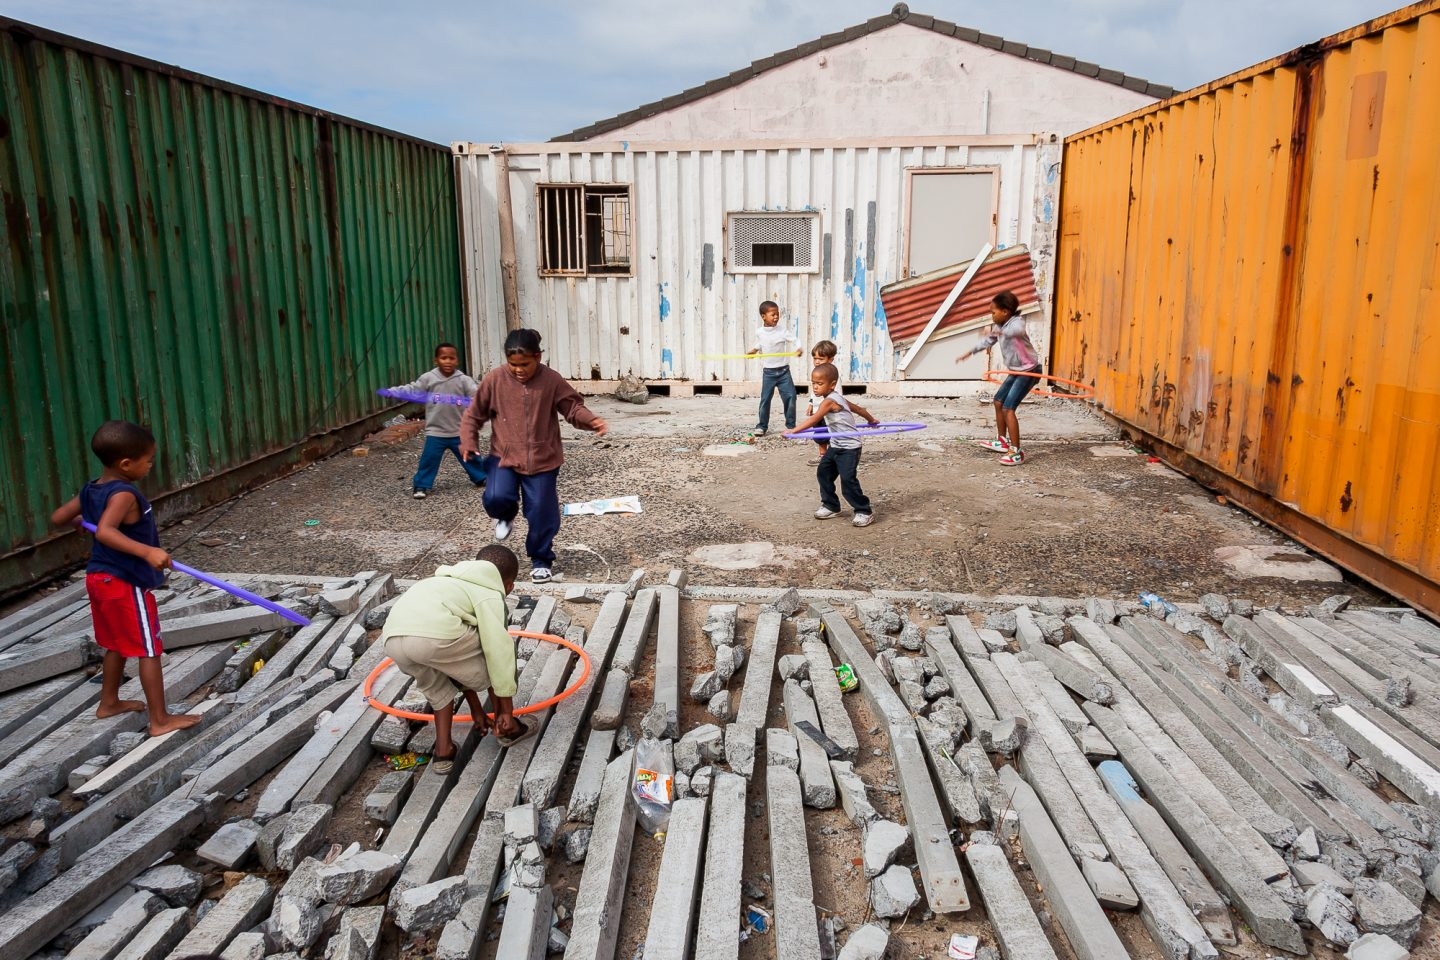 Children playing in front of the containers. Fully aware that this will at some point become a place for them to play music, dance and get after school education.